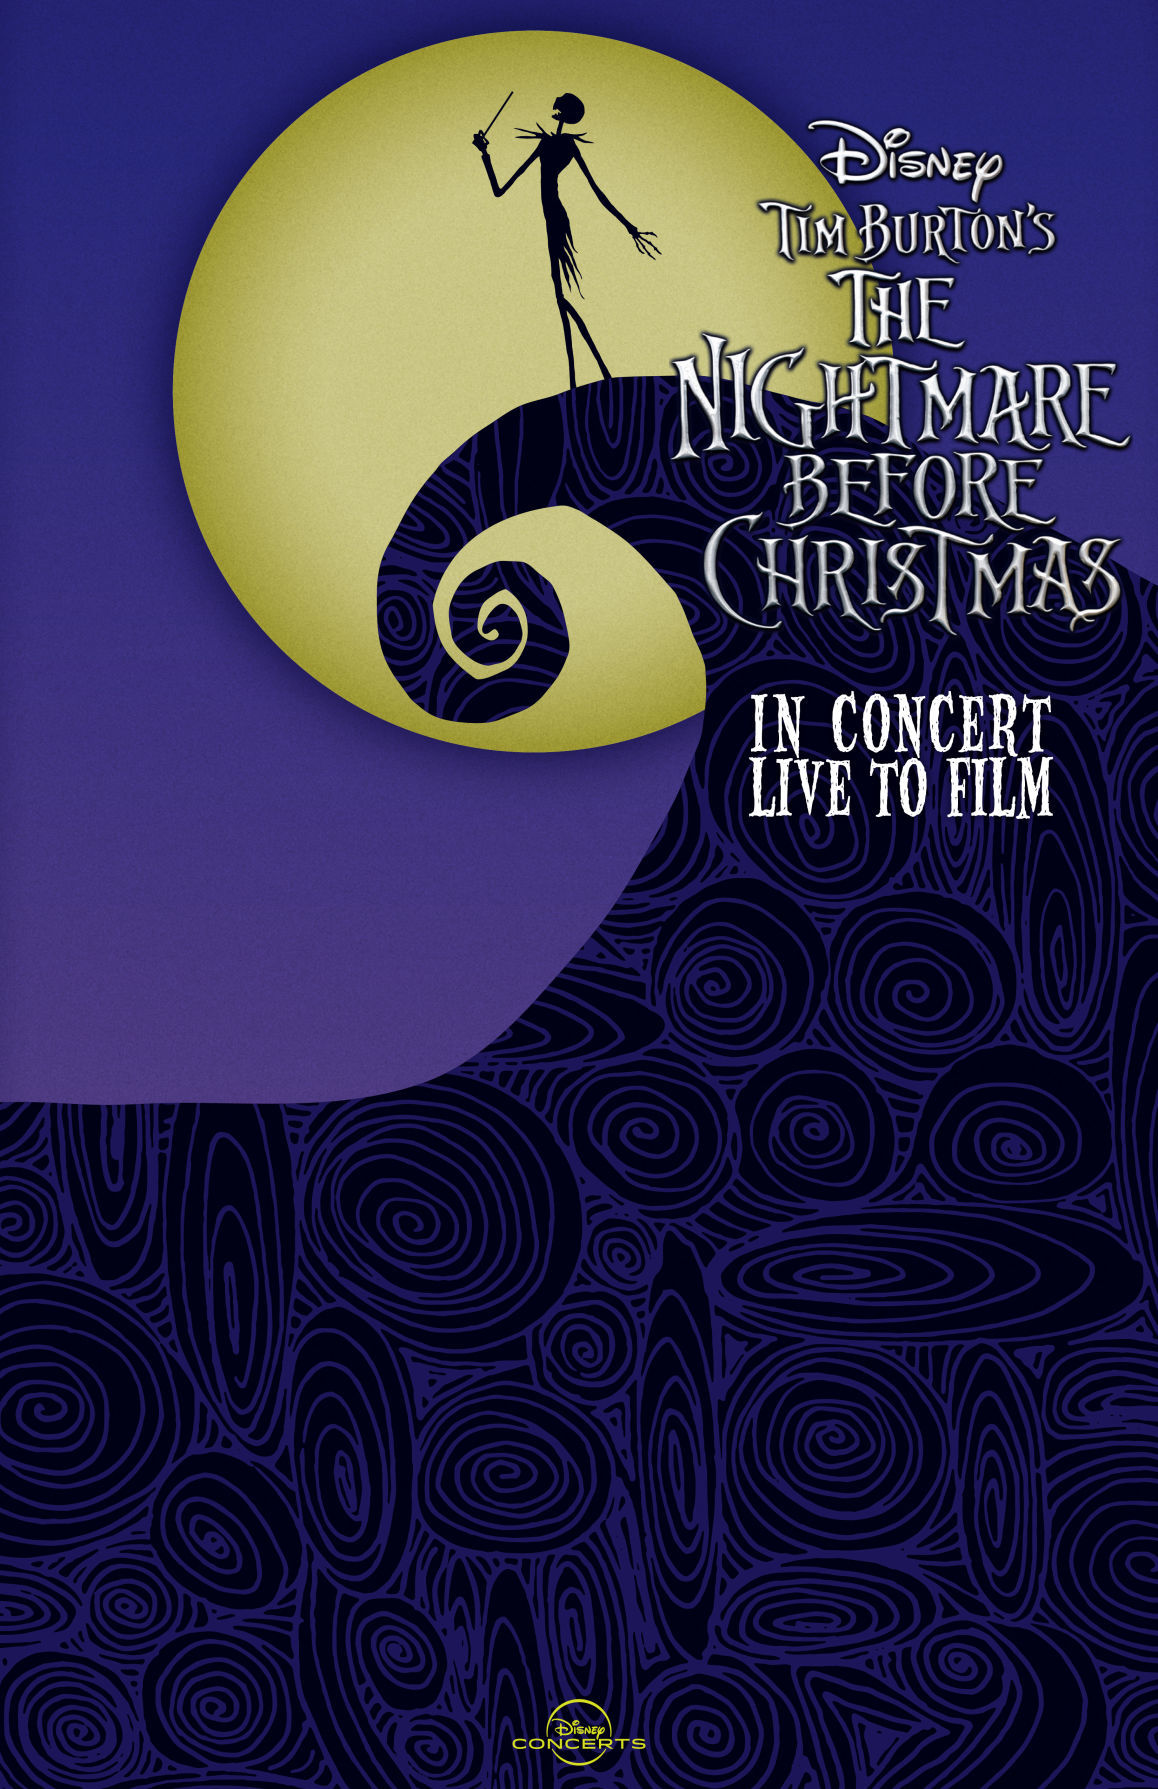 nightmare before christmas imagejpg - A Nightmare Before Christmas 2